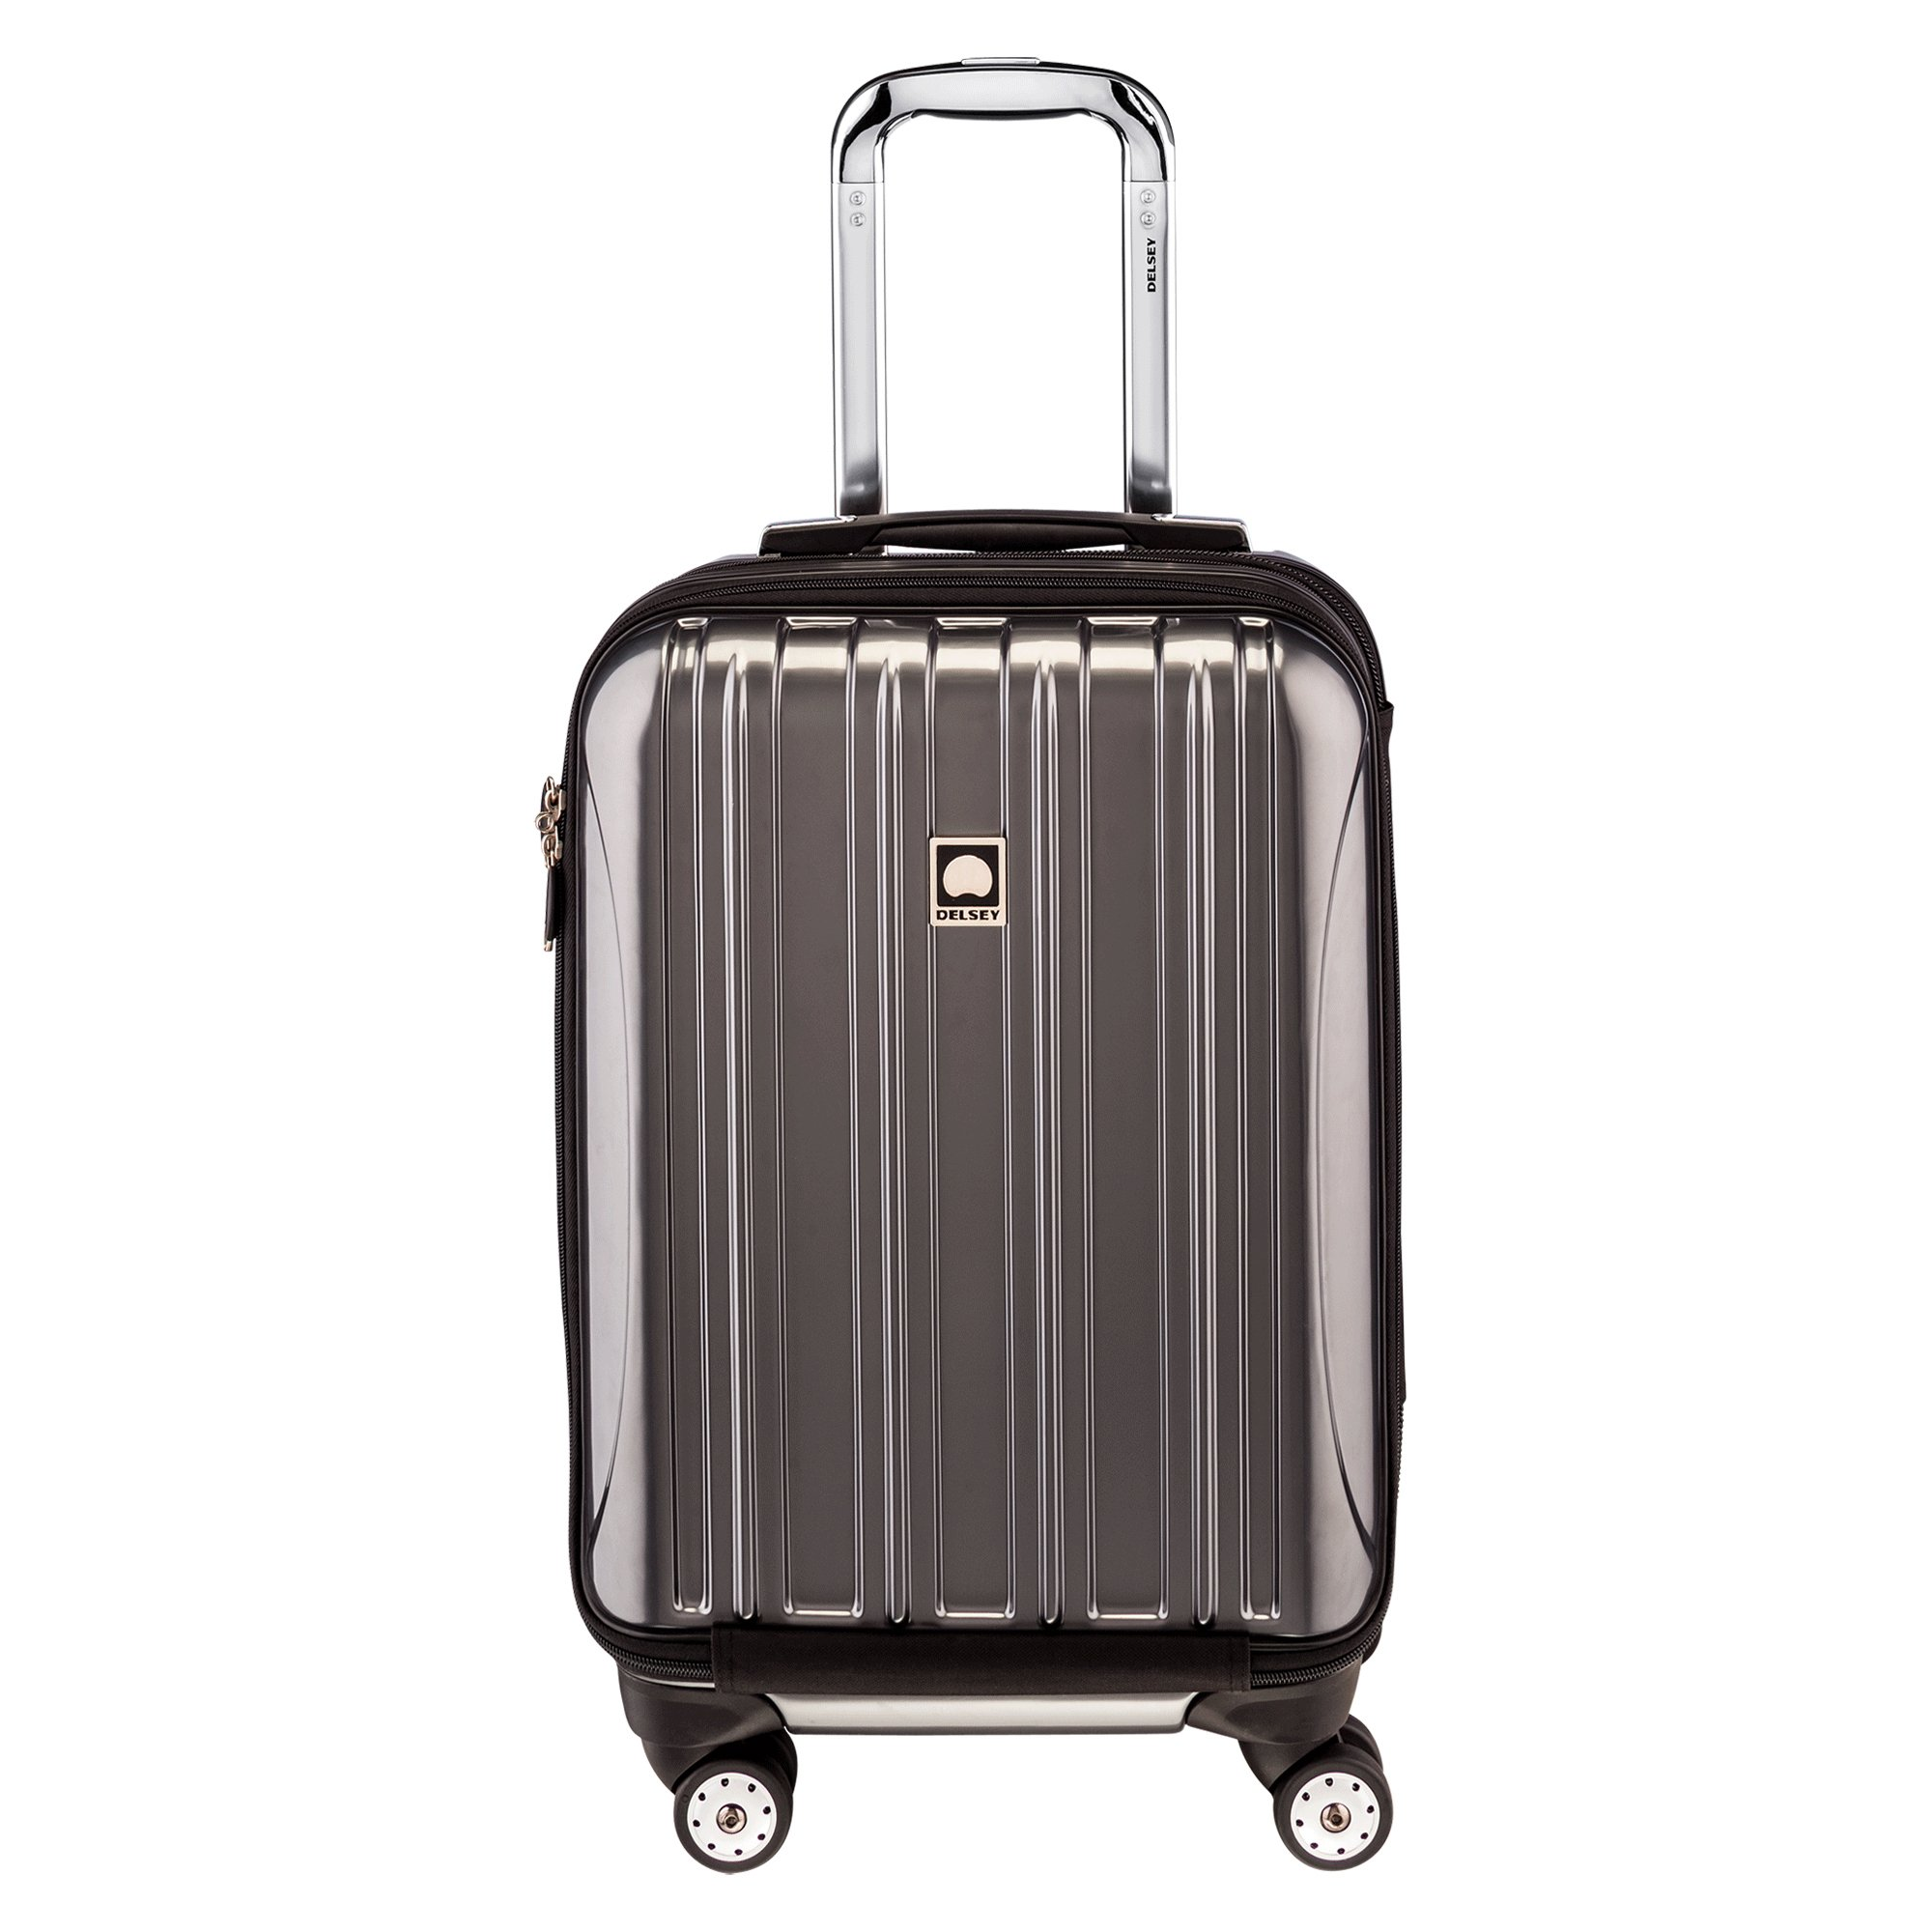 DELSEY Paris Helium Aero Hardside Expandable Luggage with Spinner Wheels, Titanium Silver, Carry-On 19 Inch